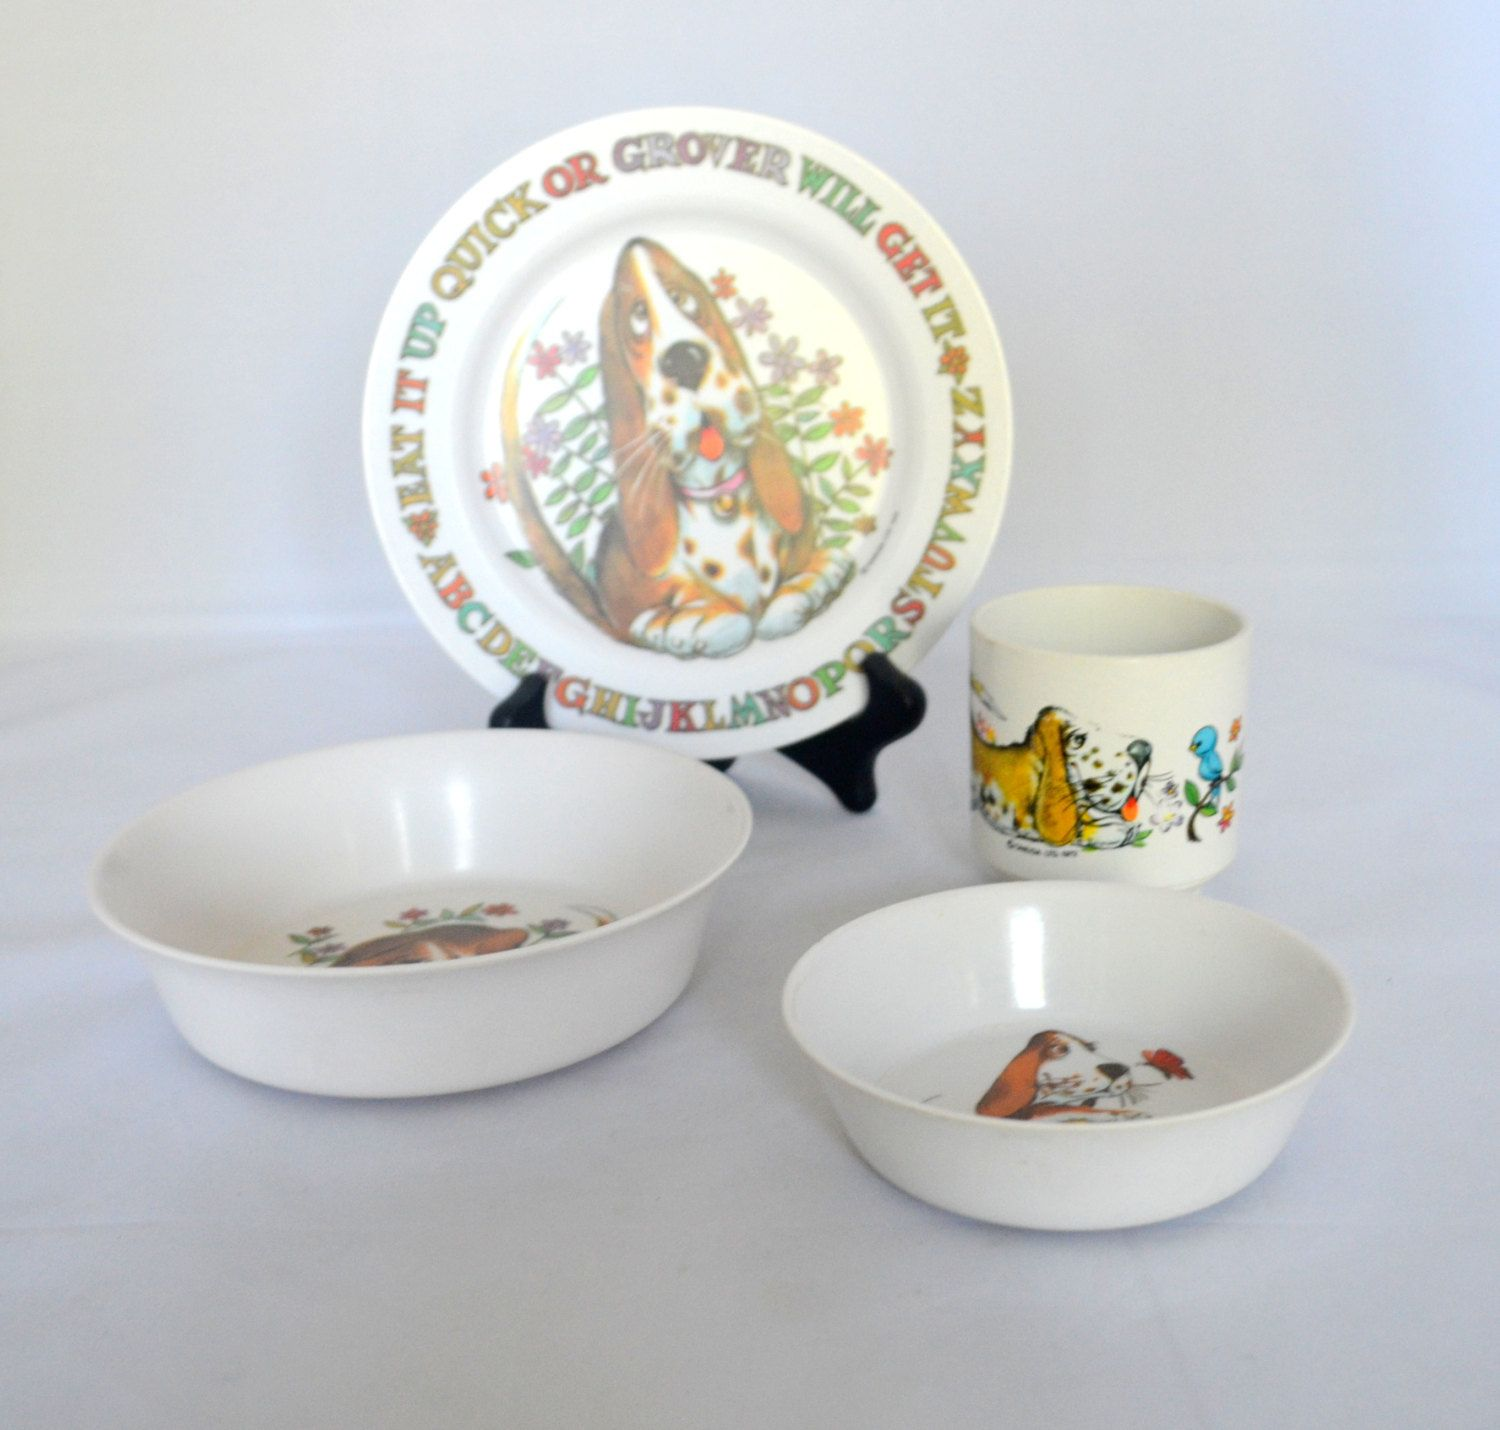 Vintage 1970s Oneida Ware Deluxe Children S Dishes Grover The Dog 4 Piece Set Melamine Cup Plate And Two Bowls By Ups Childrens Dishes Melamine Cups Oneida